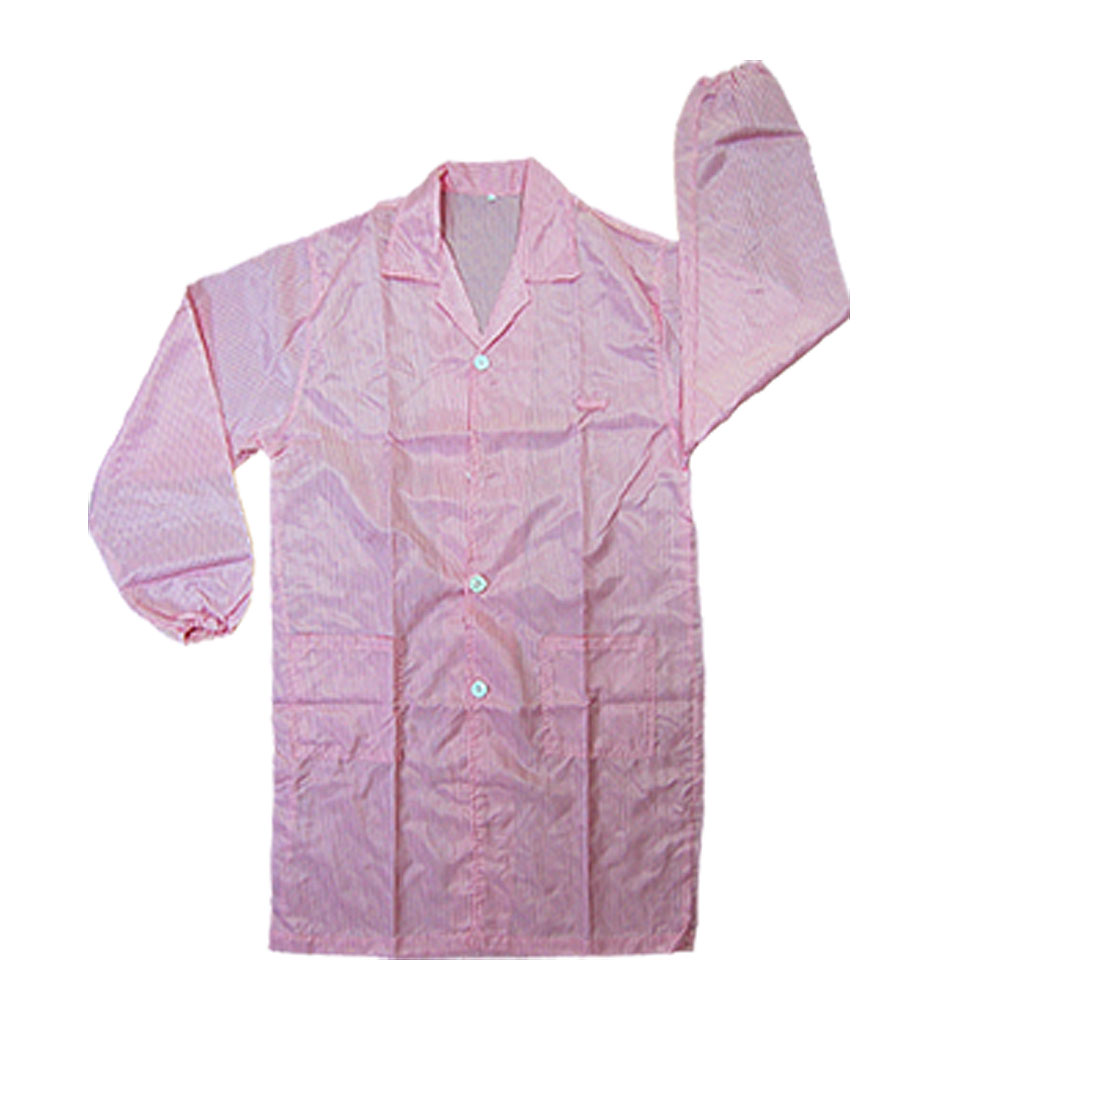 Pink Properties QA Anti-static LAB Coat Shirt L